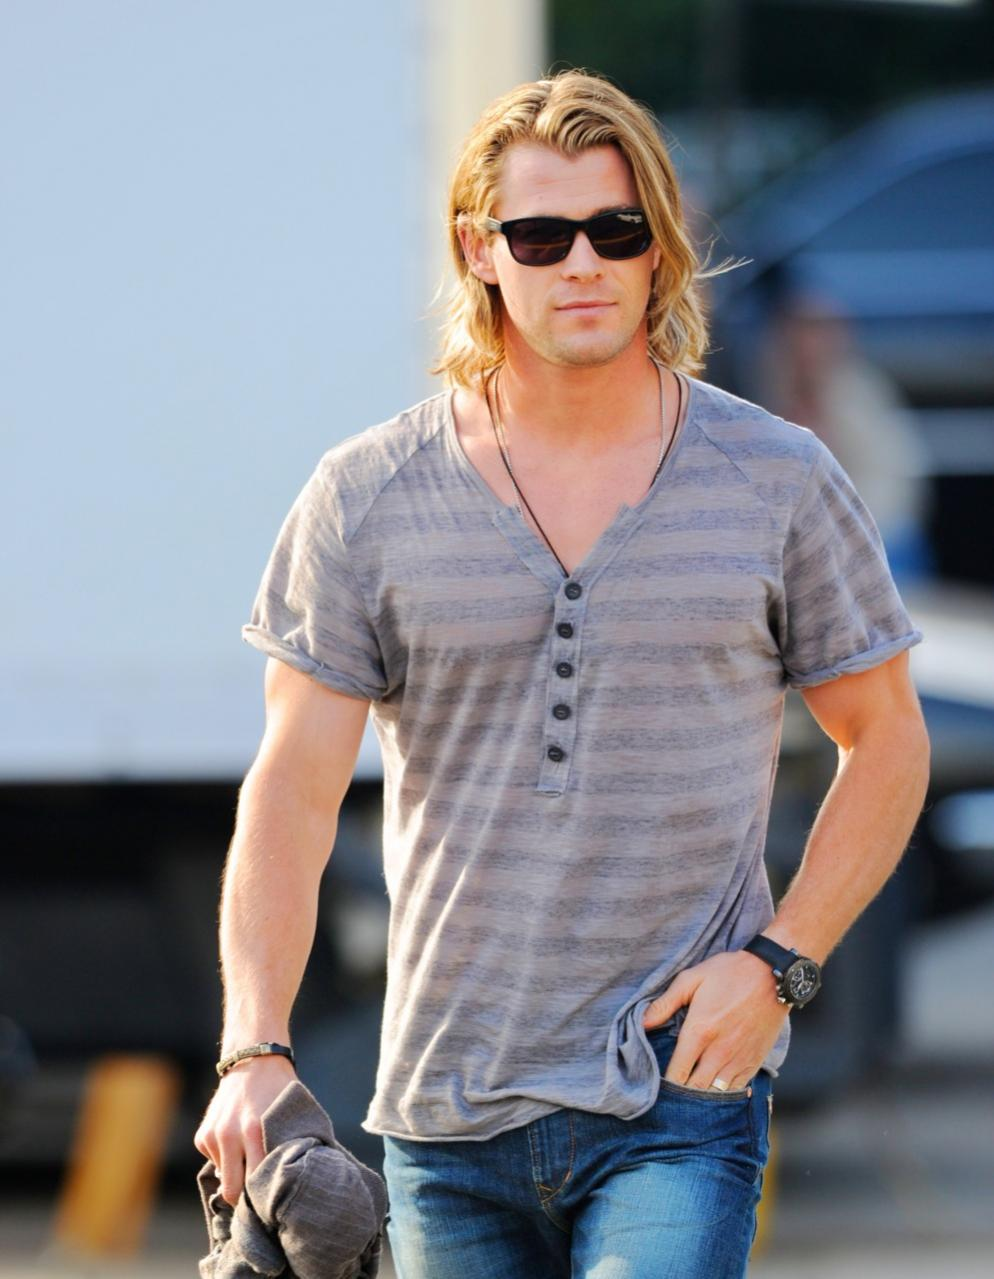 Chris Hemsworth HD Wallpaper | 2014 | Chris Hemsworth HD Pictures